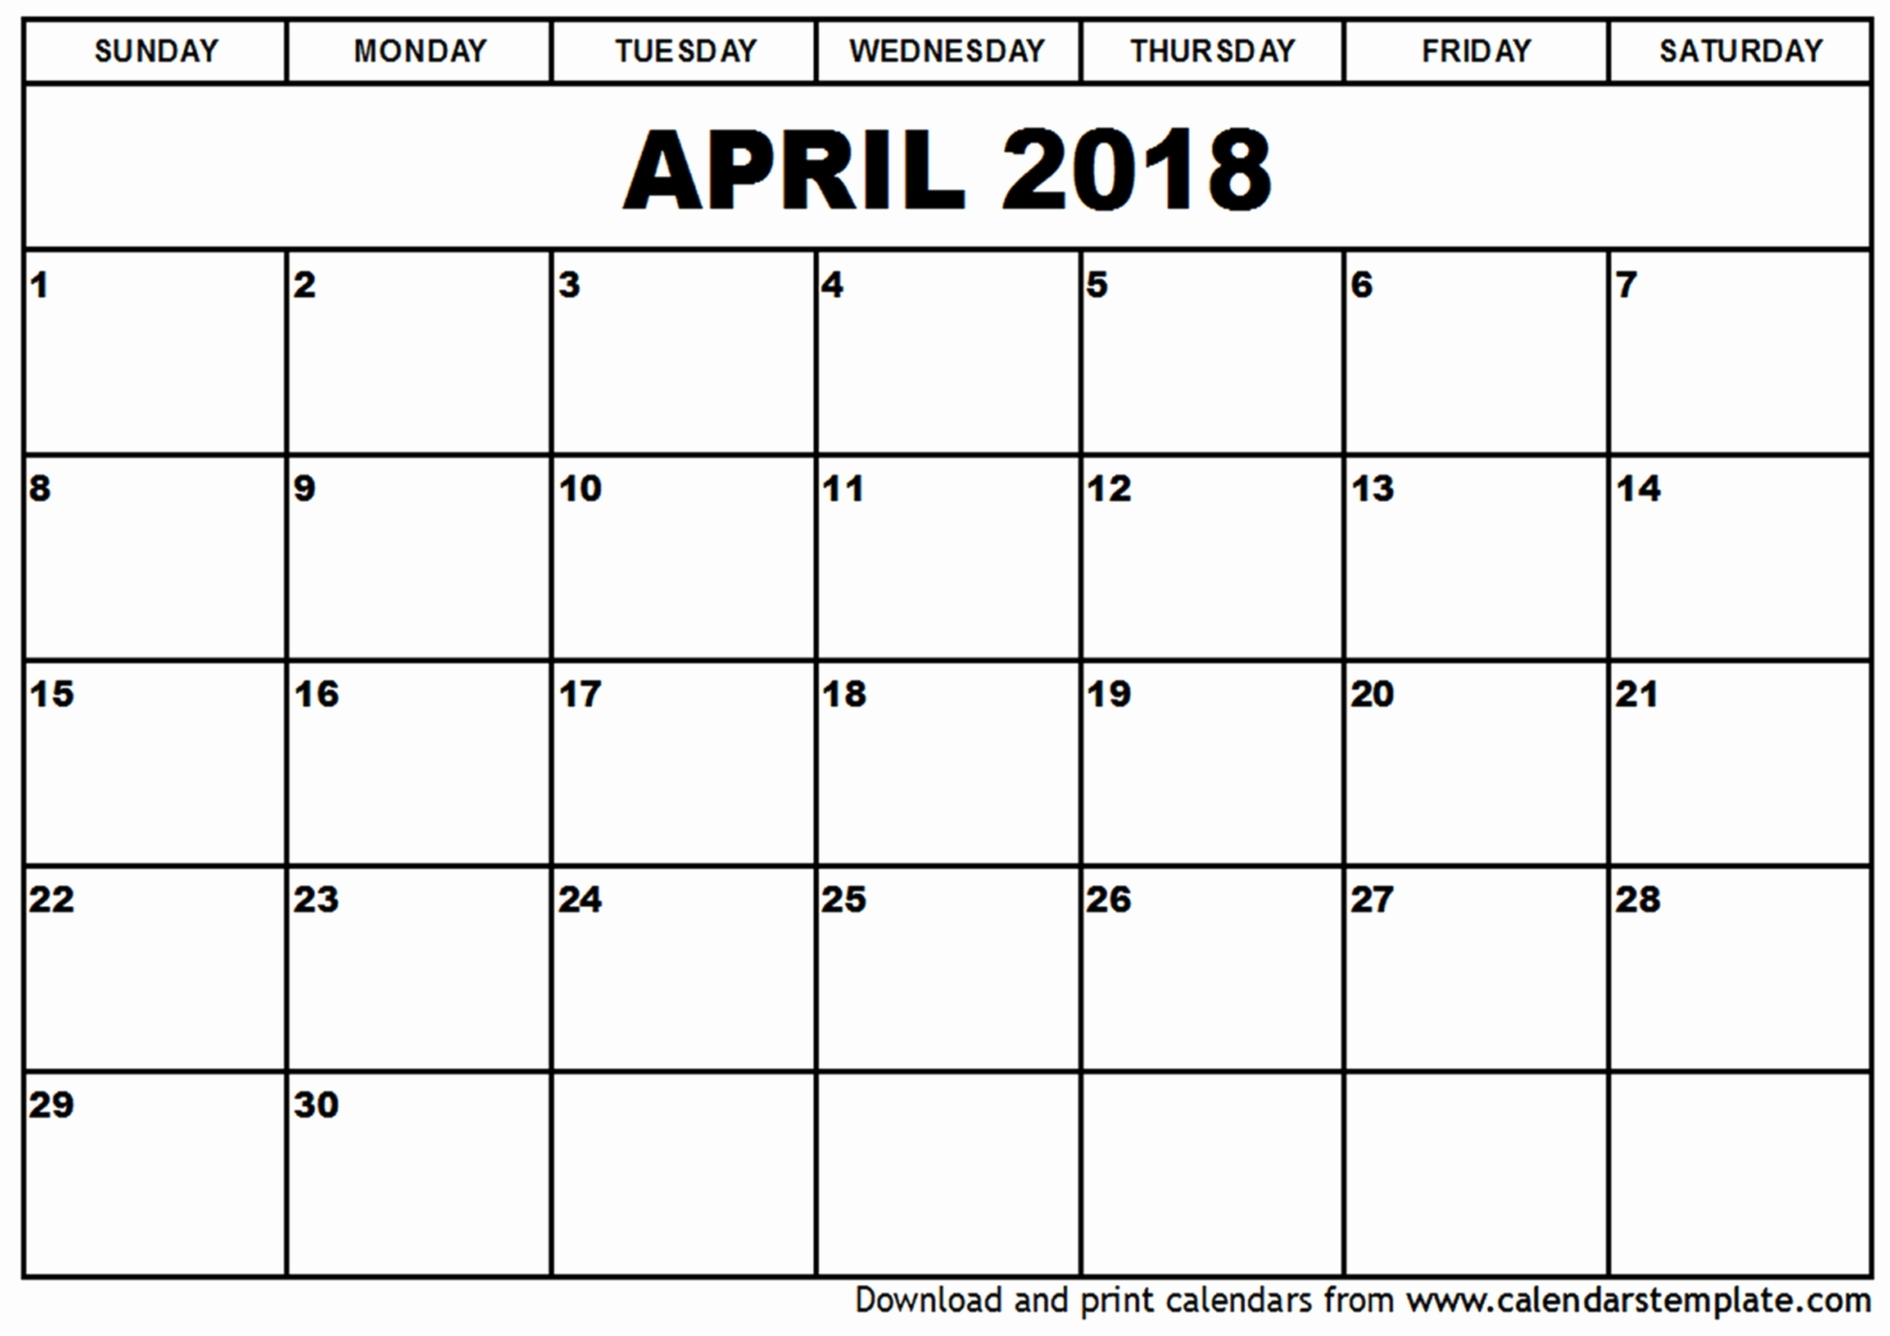 Www Free Printable Calendar Net April 2018 Visual Schedule Template